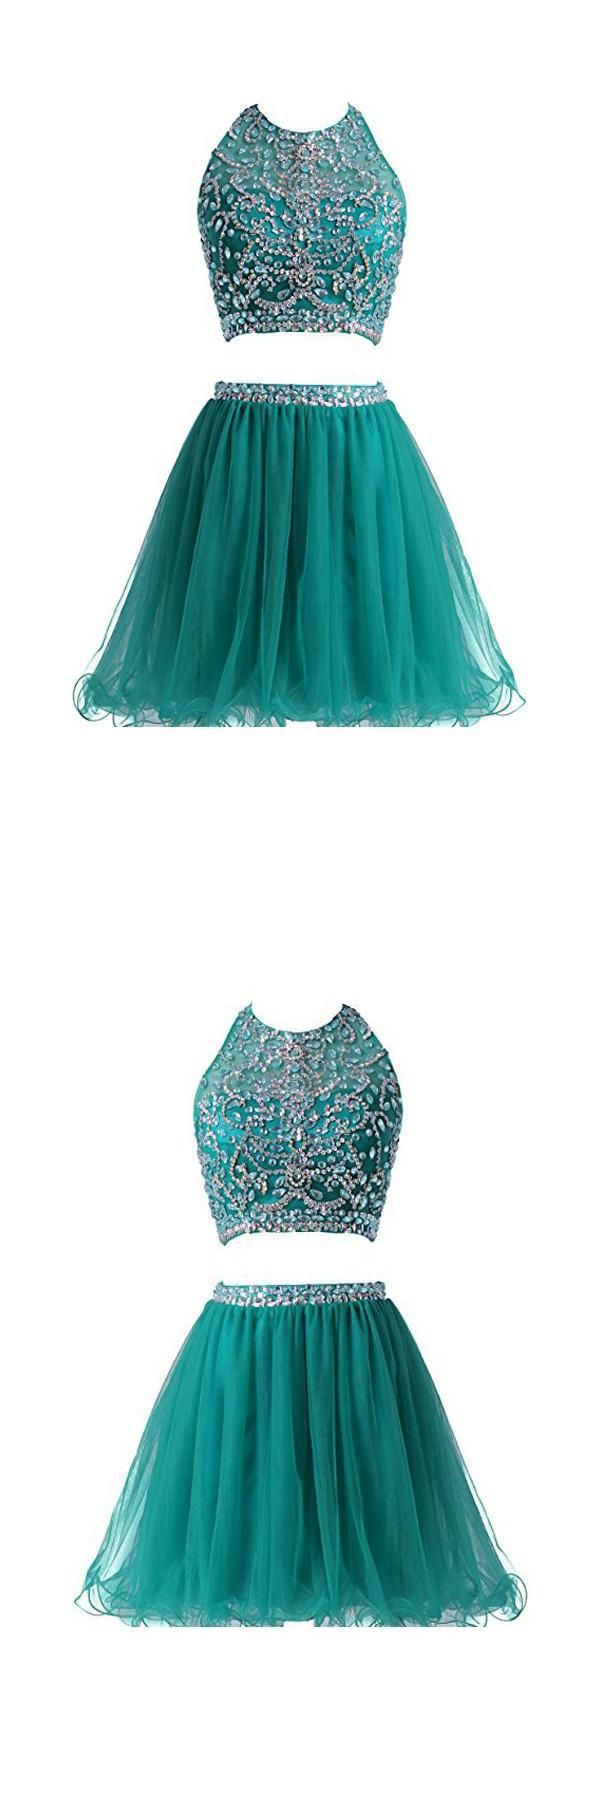 Short homecoming dresses two pieces homecoming dresses